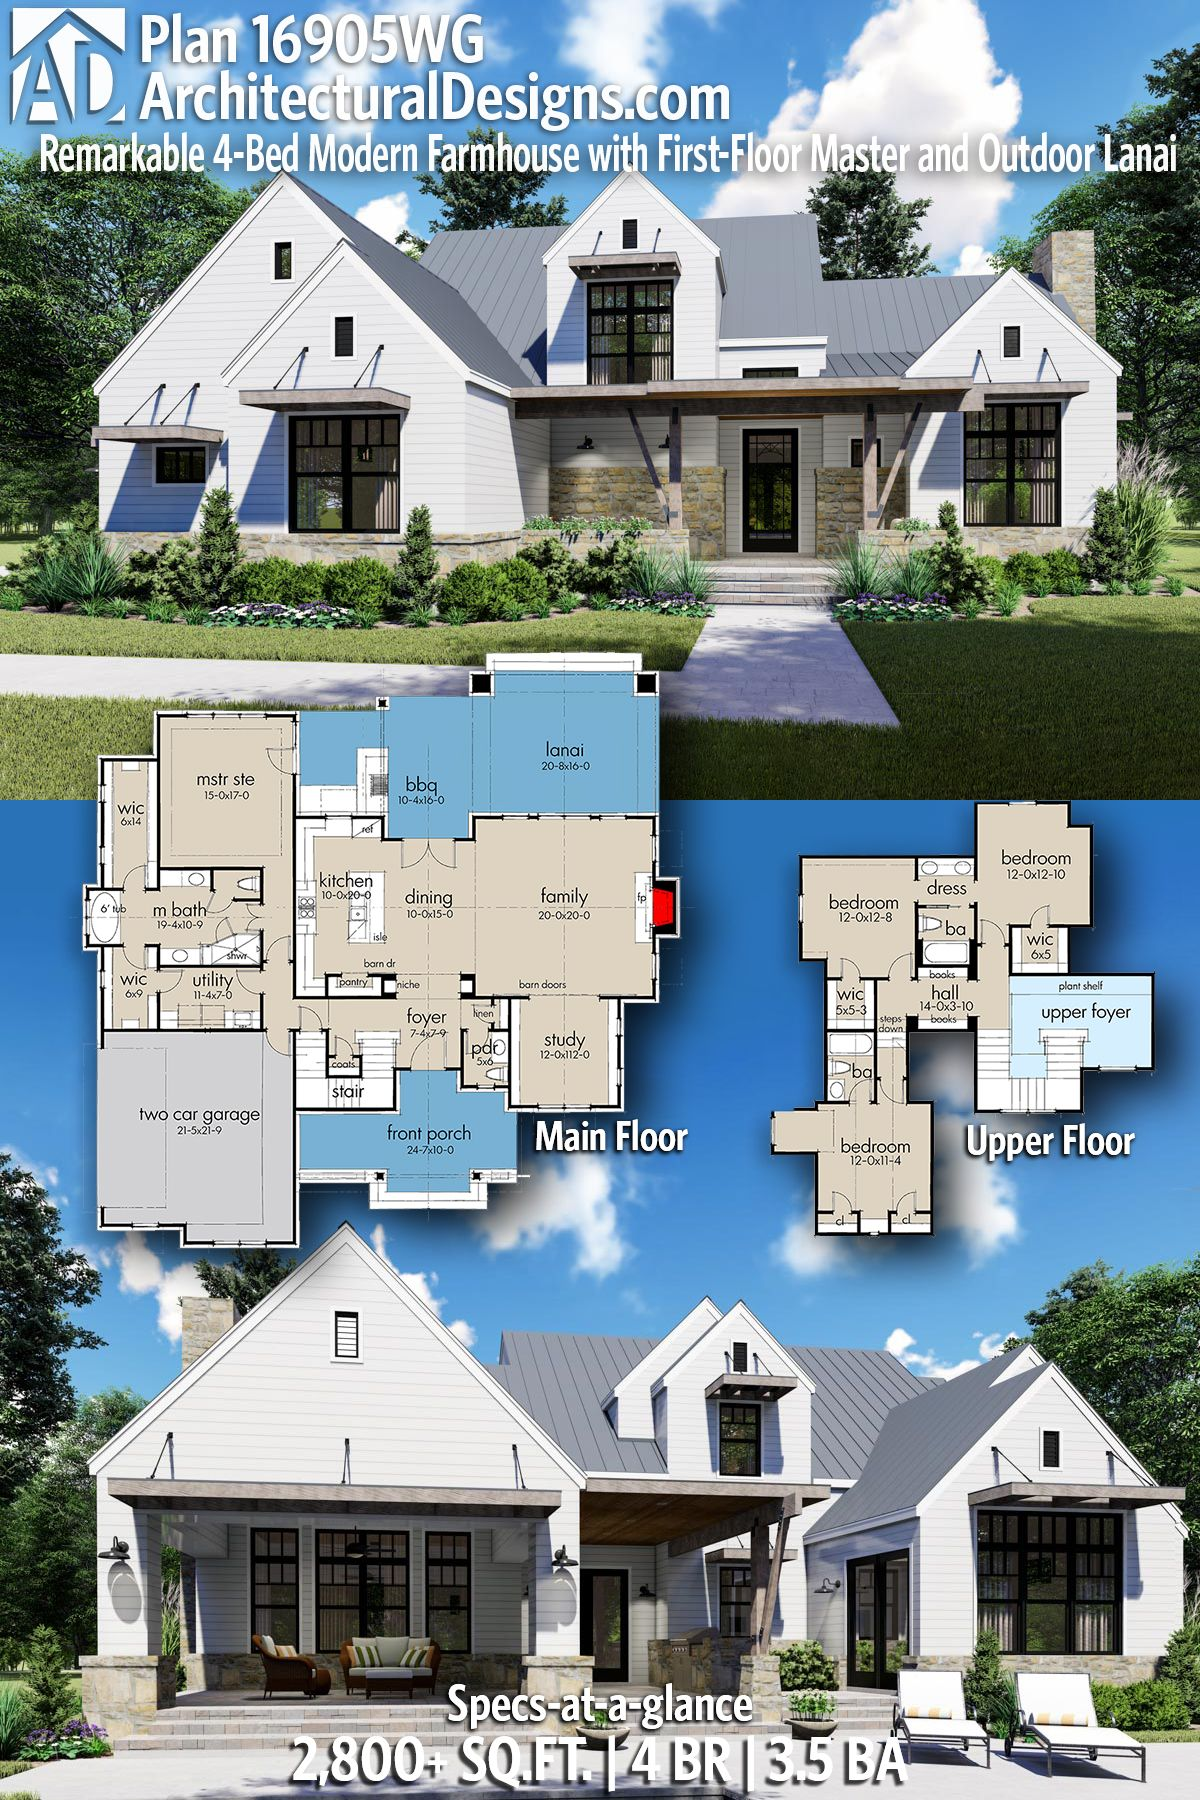 Plan 16905WG Remarkable 4Bed Modern Farmhouse with First